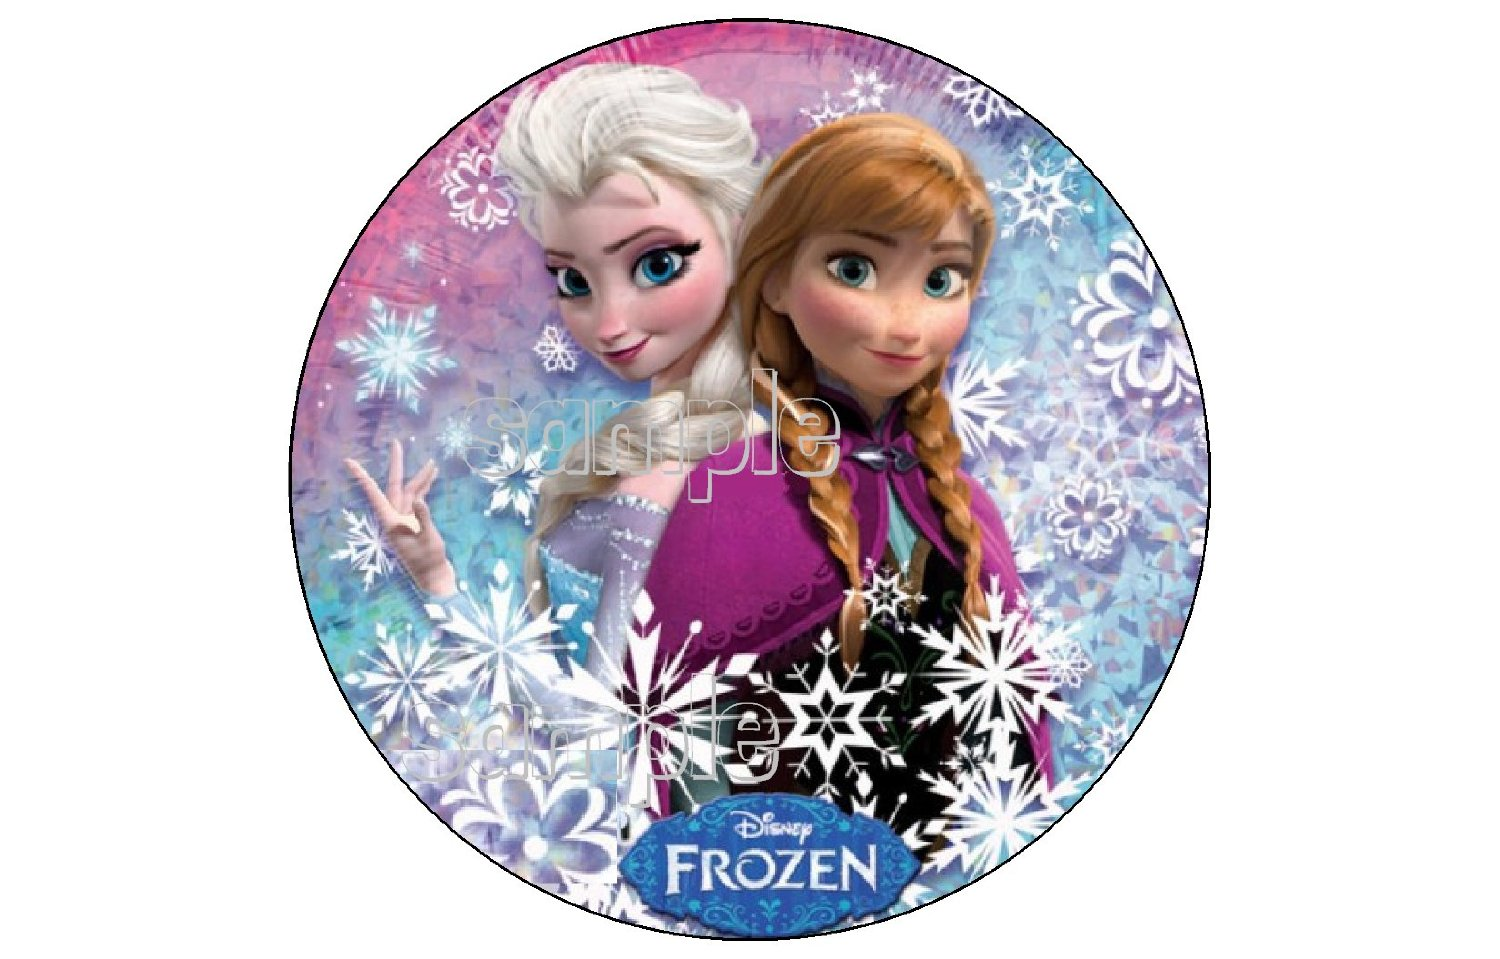 Buy Frozen Anna Elsa Olaf 12ct Edible Image Cupcake